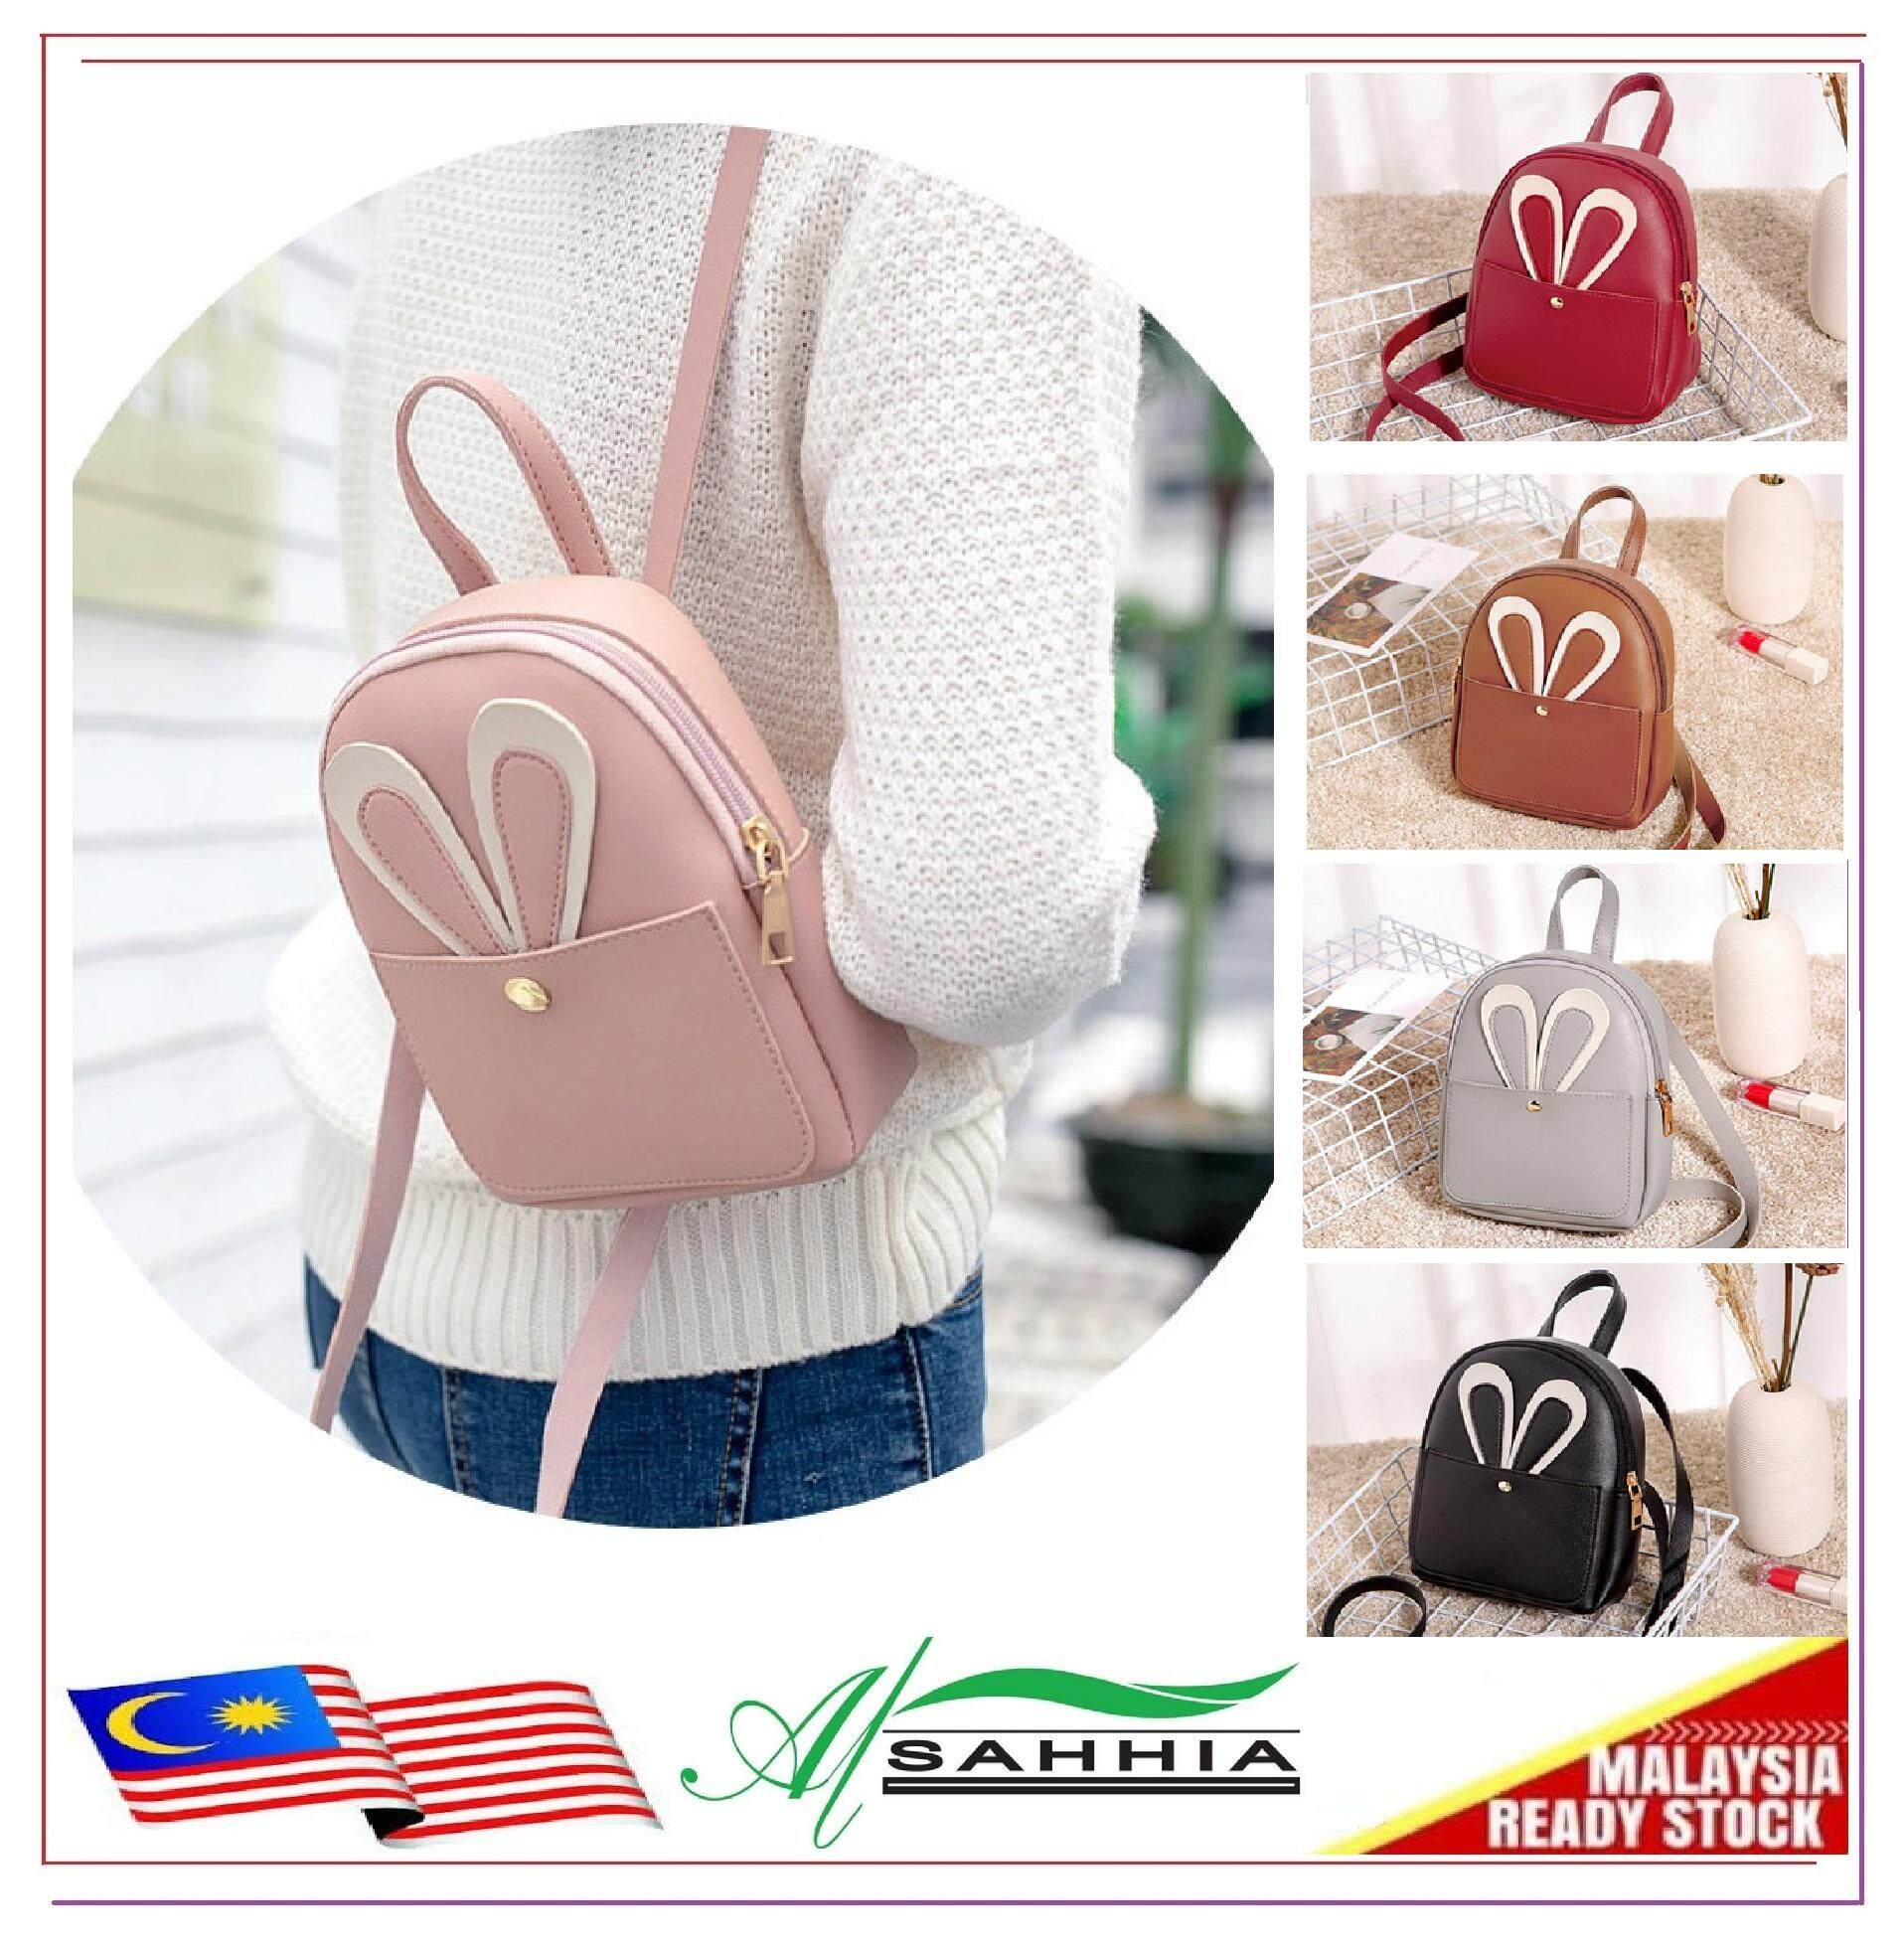 b42bc41c4a12 Al Sahhia Ready Stock Rabbit Ear Mini Backpack Beg PU Bag Casual Bag